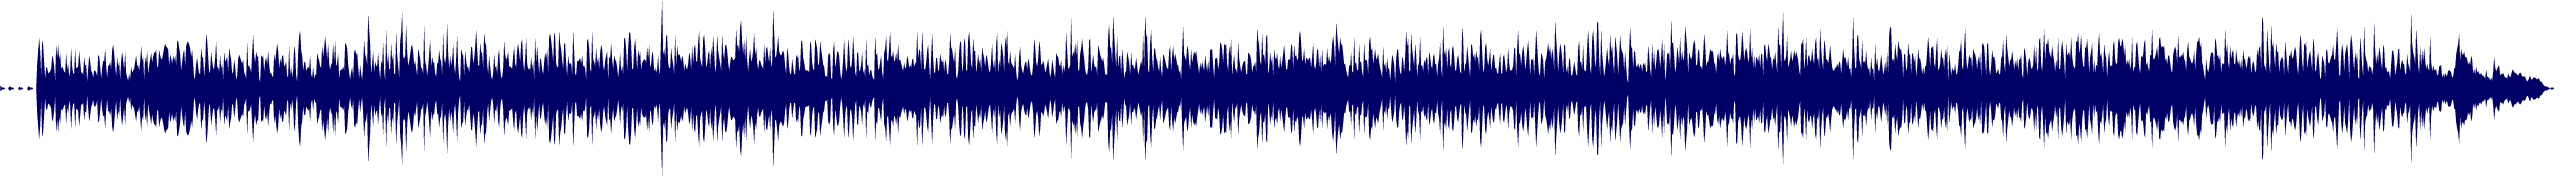 waveform of track #69150